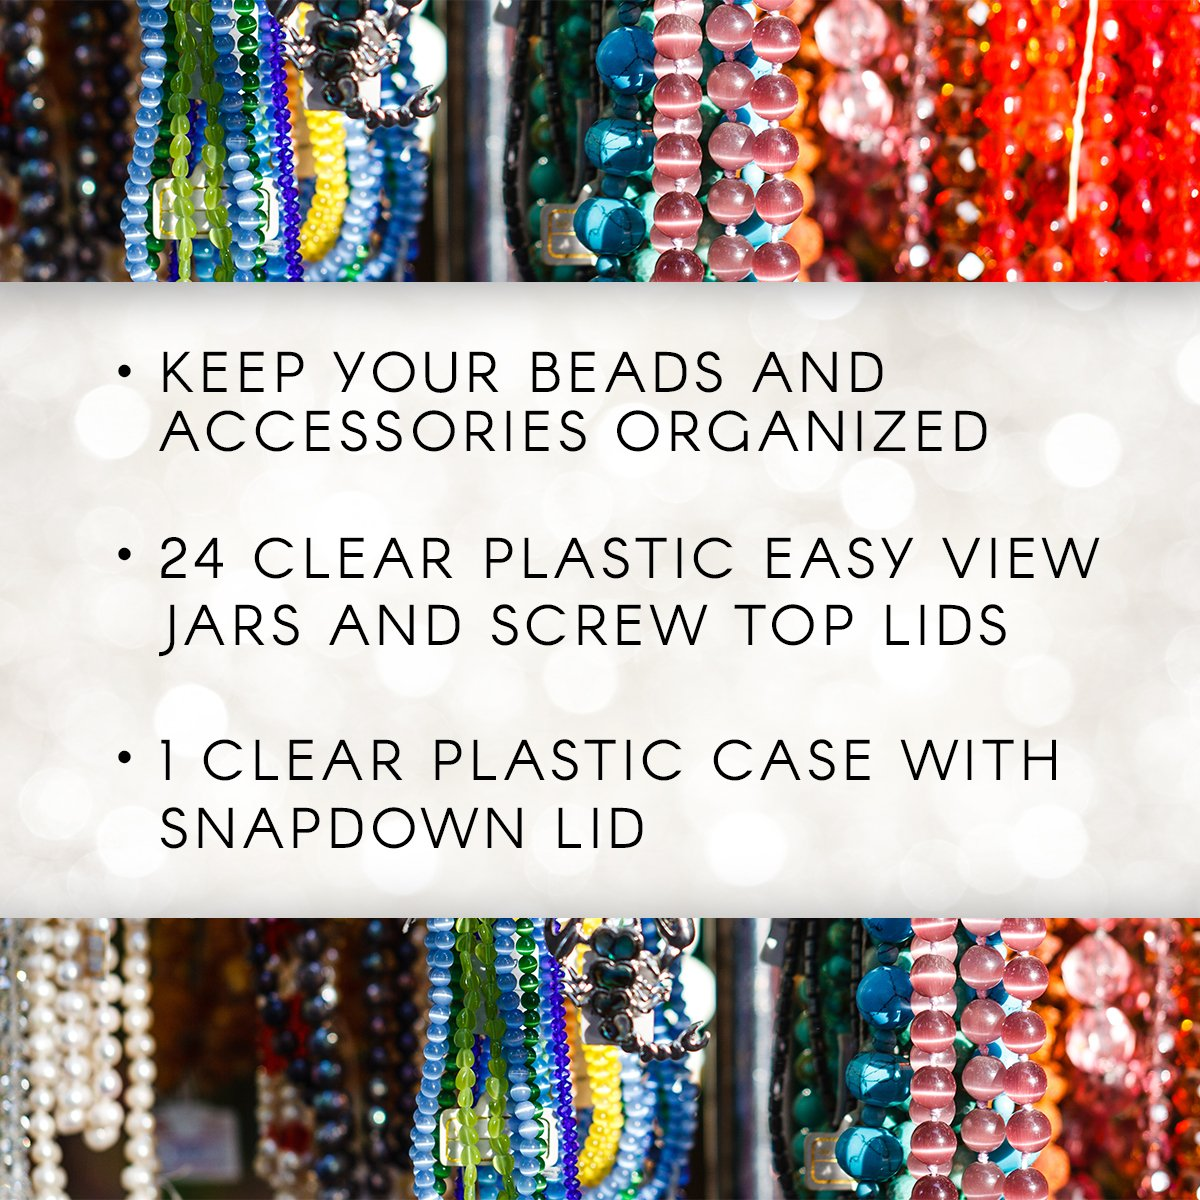 Girls Need help, wildly want beads with pearls, but something seems to me like a babkin option ... Worth it not worth a brother 2